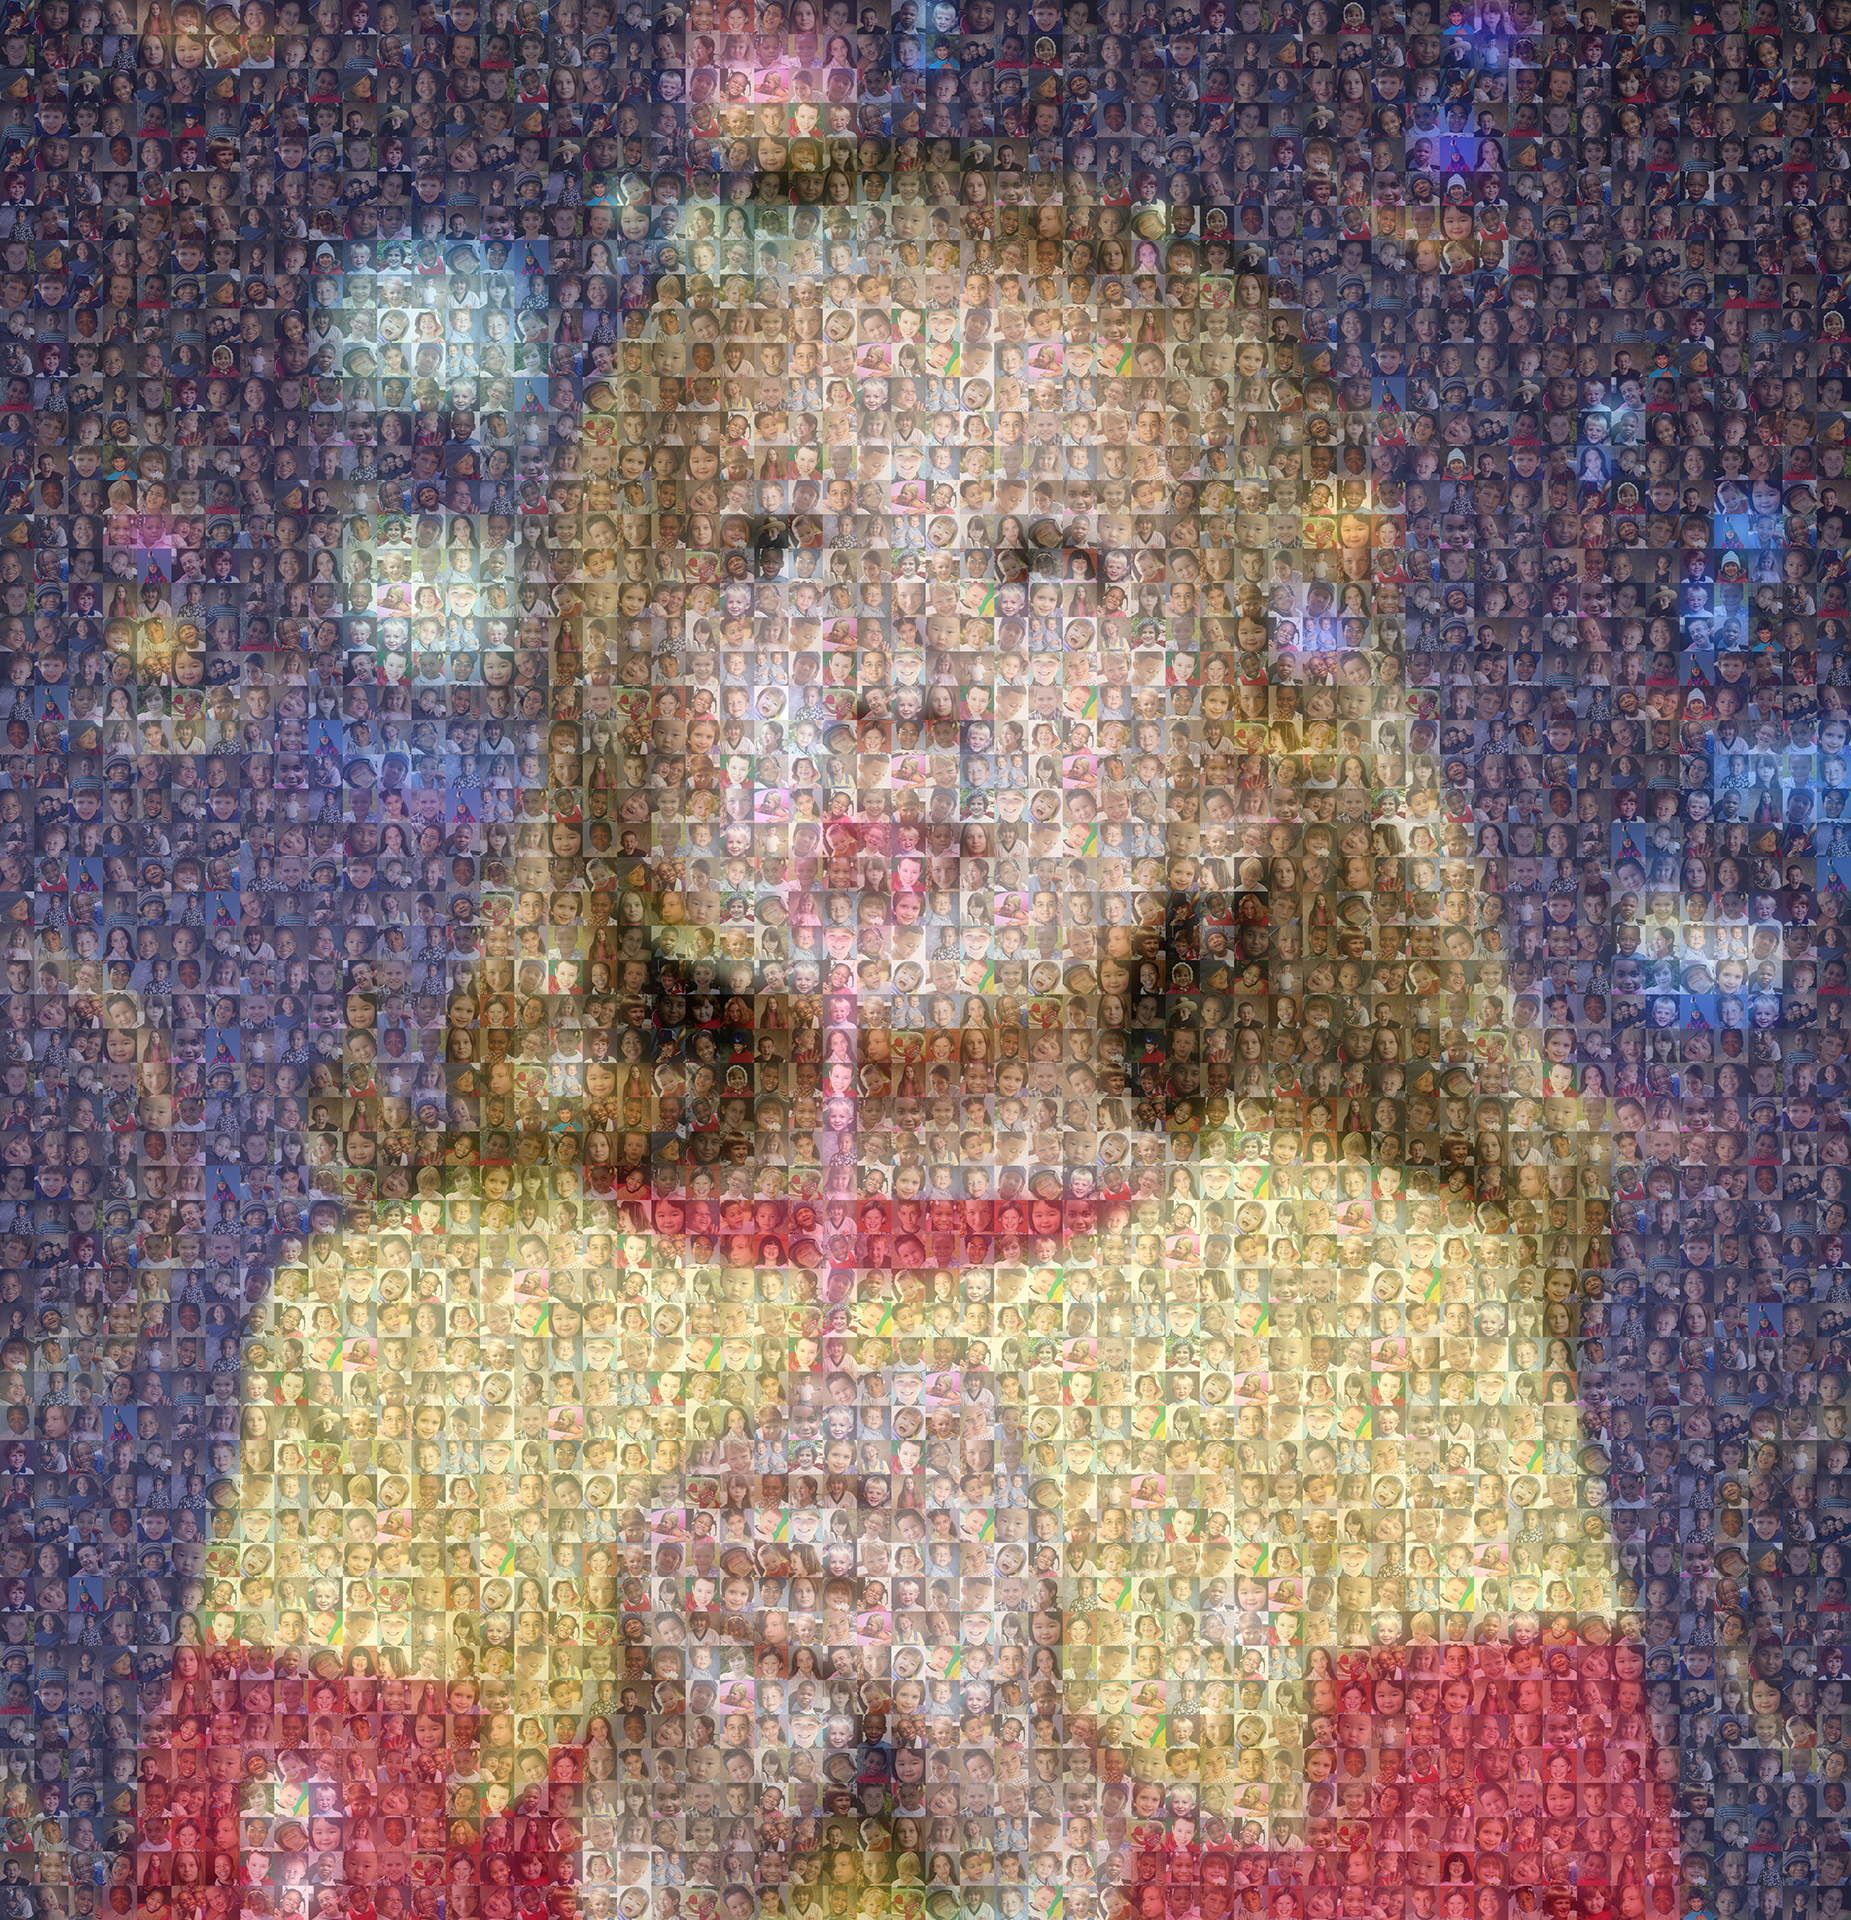 photo mosaic Fund raising mosaic poster created using only 132 photos of children